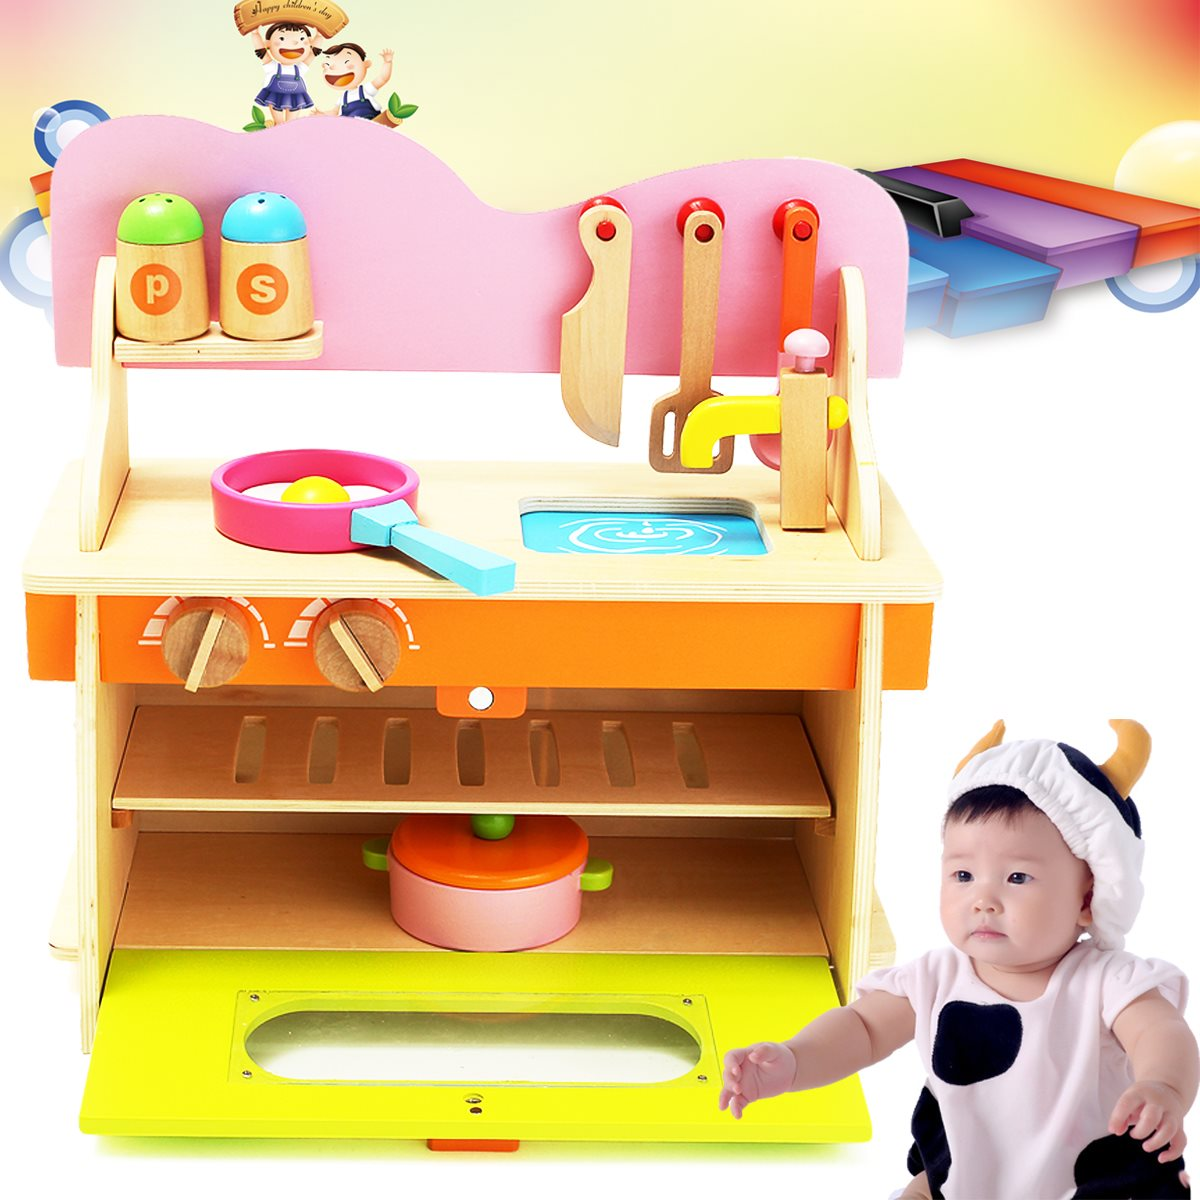 New Arrival 36*17*36cm Colorful Kitchen Wooden Wood Pretend Gas Stove Toy Model Set For Kids Gifts Home mothergarden kids wood playhouse toy gas burner set stove wooden puzzle game kitchen toys